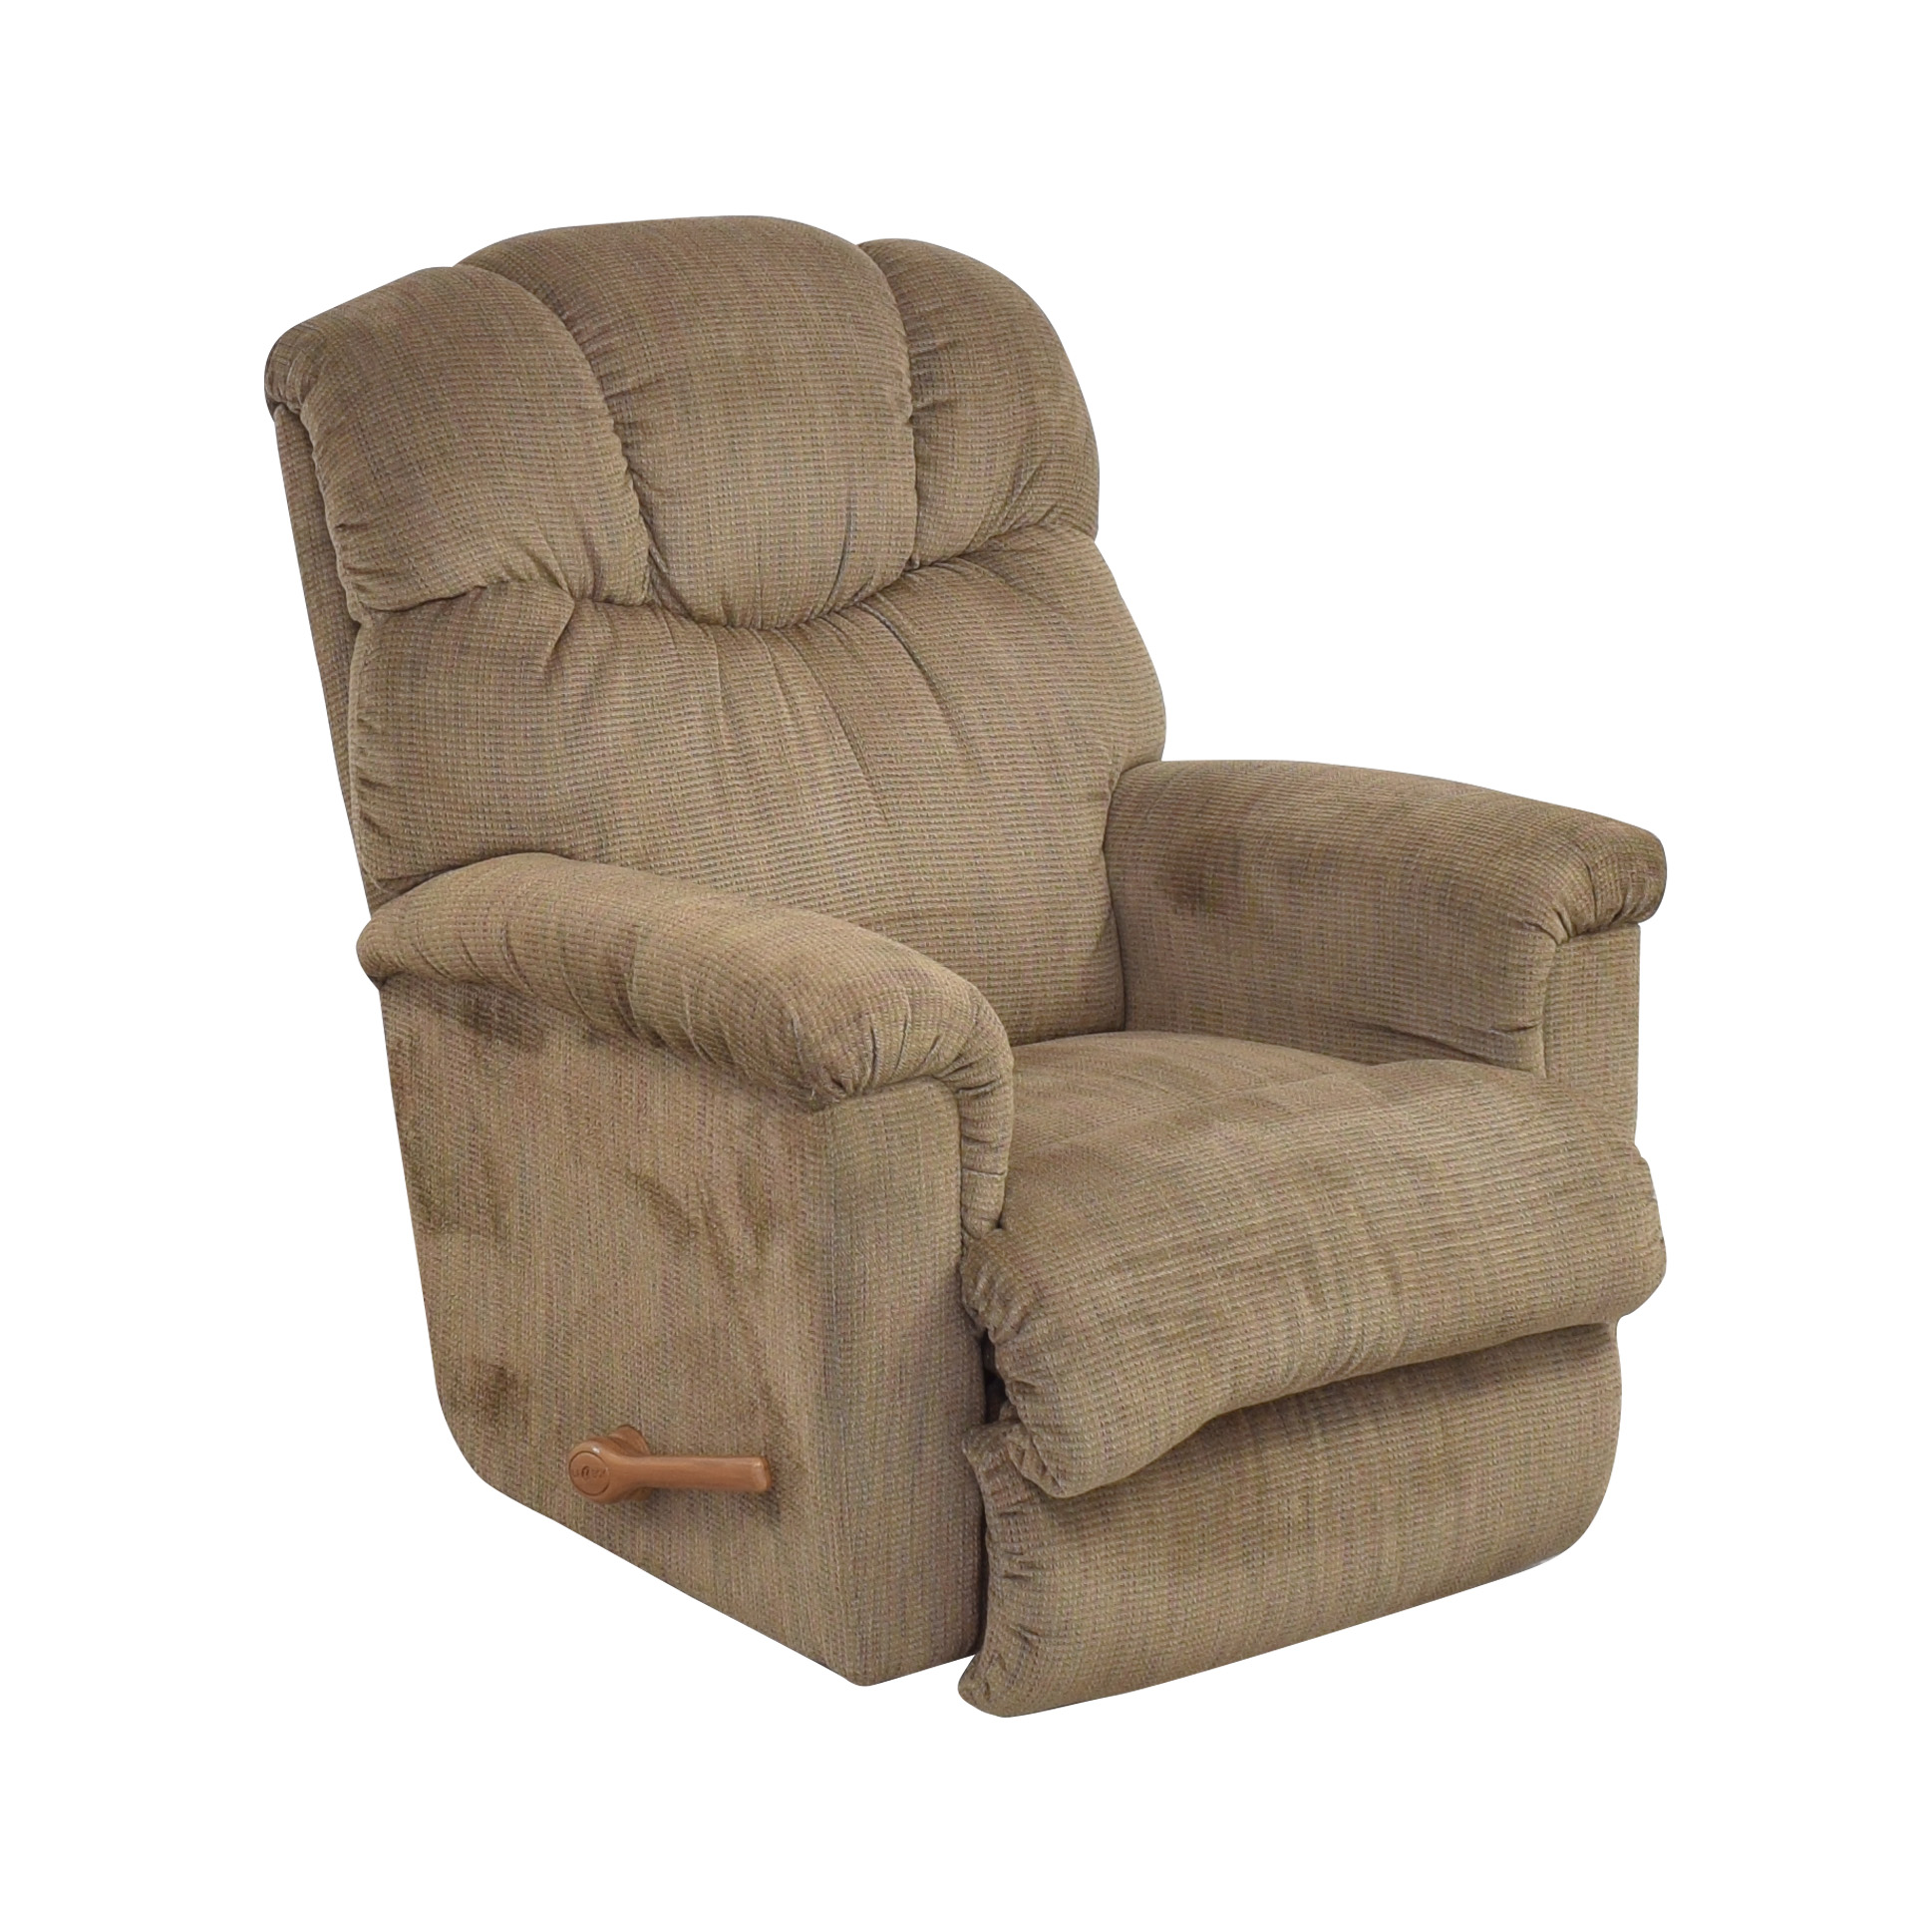 La-Z-Boy La-Z-Boy Recliner second hand